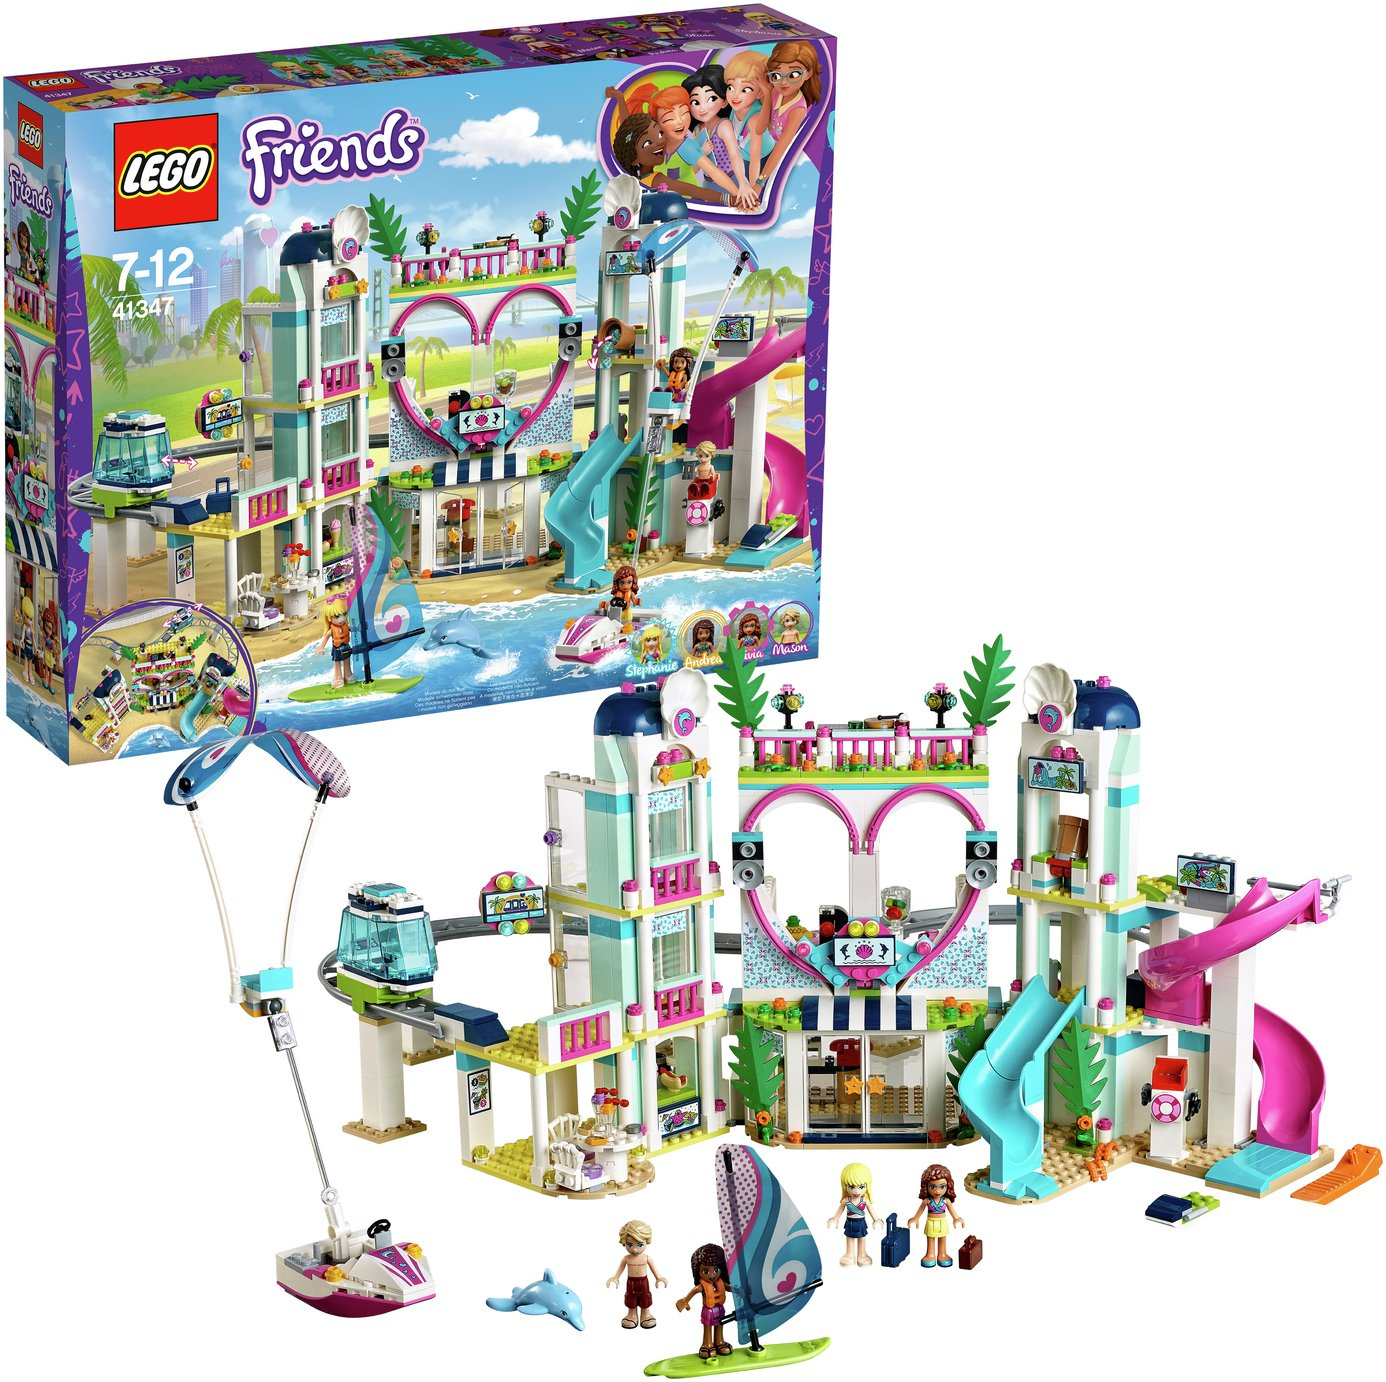 LEGO Friends Heartlake City Resort Hotel Playset - 41347